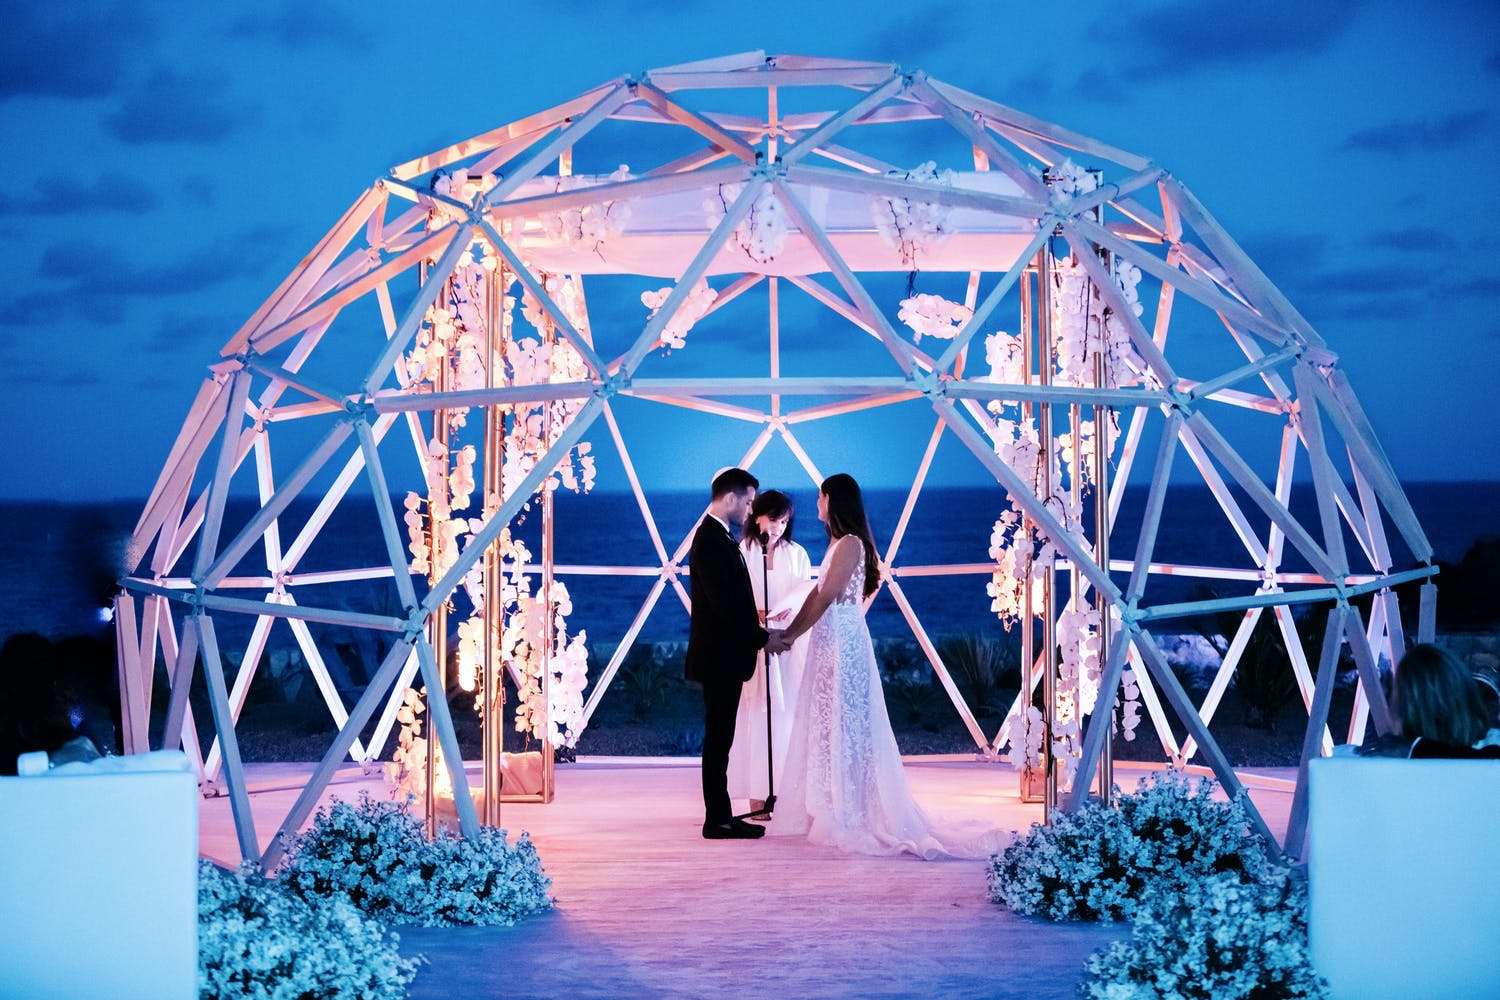 Couple exchange vows in a geometric wedding décor igloo-like structure | PartySlate